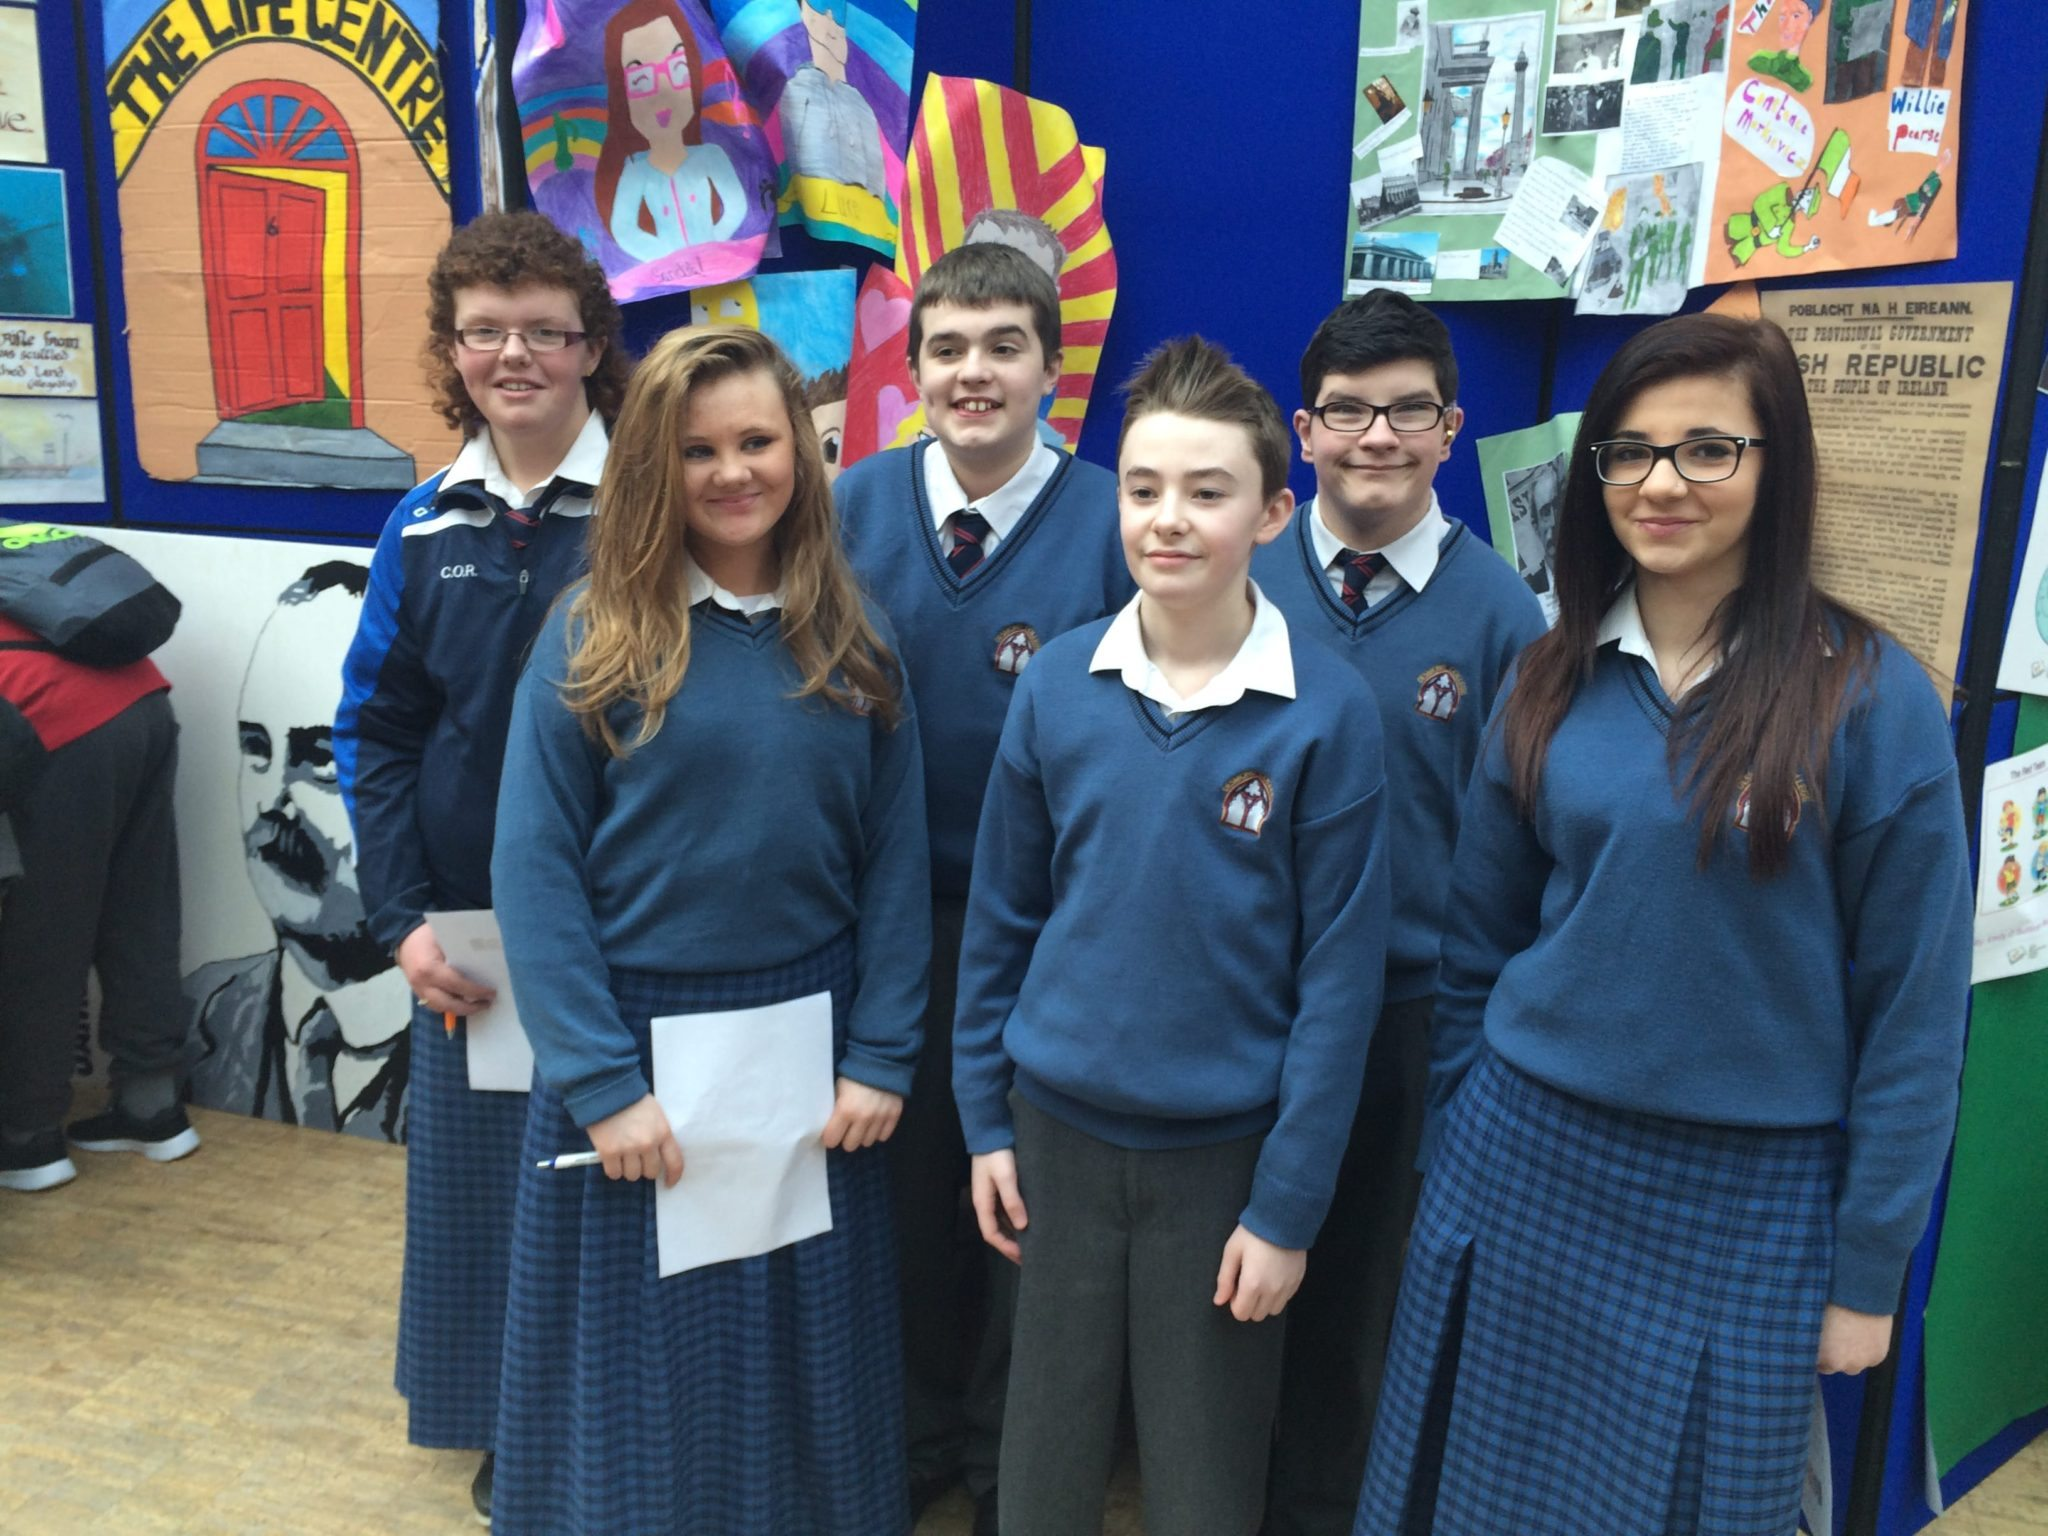 2016 Feb: Rang Fintan, Desmond College Junior Certificate Schools Programme students, at the Cork Make a Book Exhibition